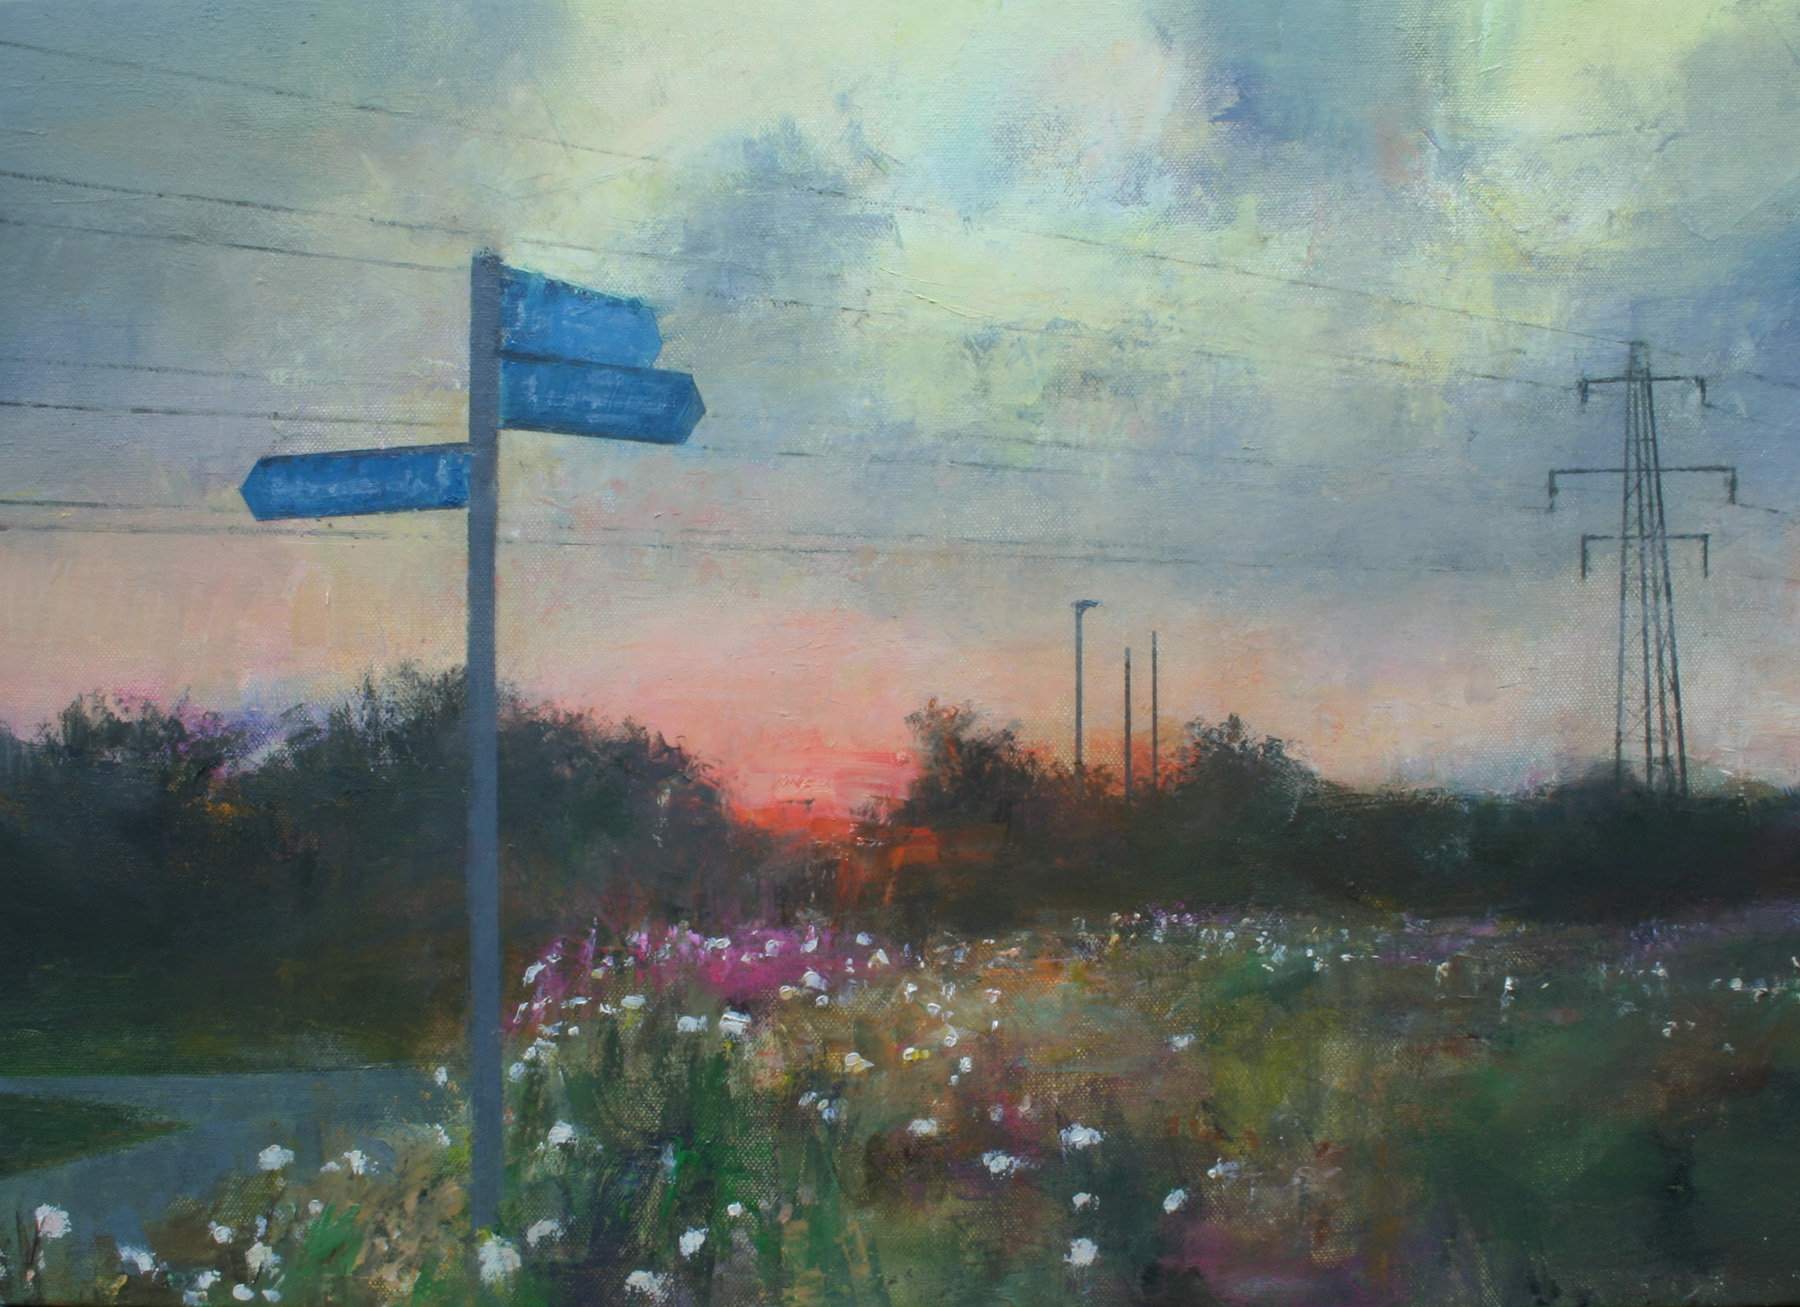 "Edgelands - cycle path, Nottingham, Oil on Canvas, 14 x 10"", £950 - Sold"